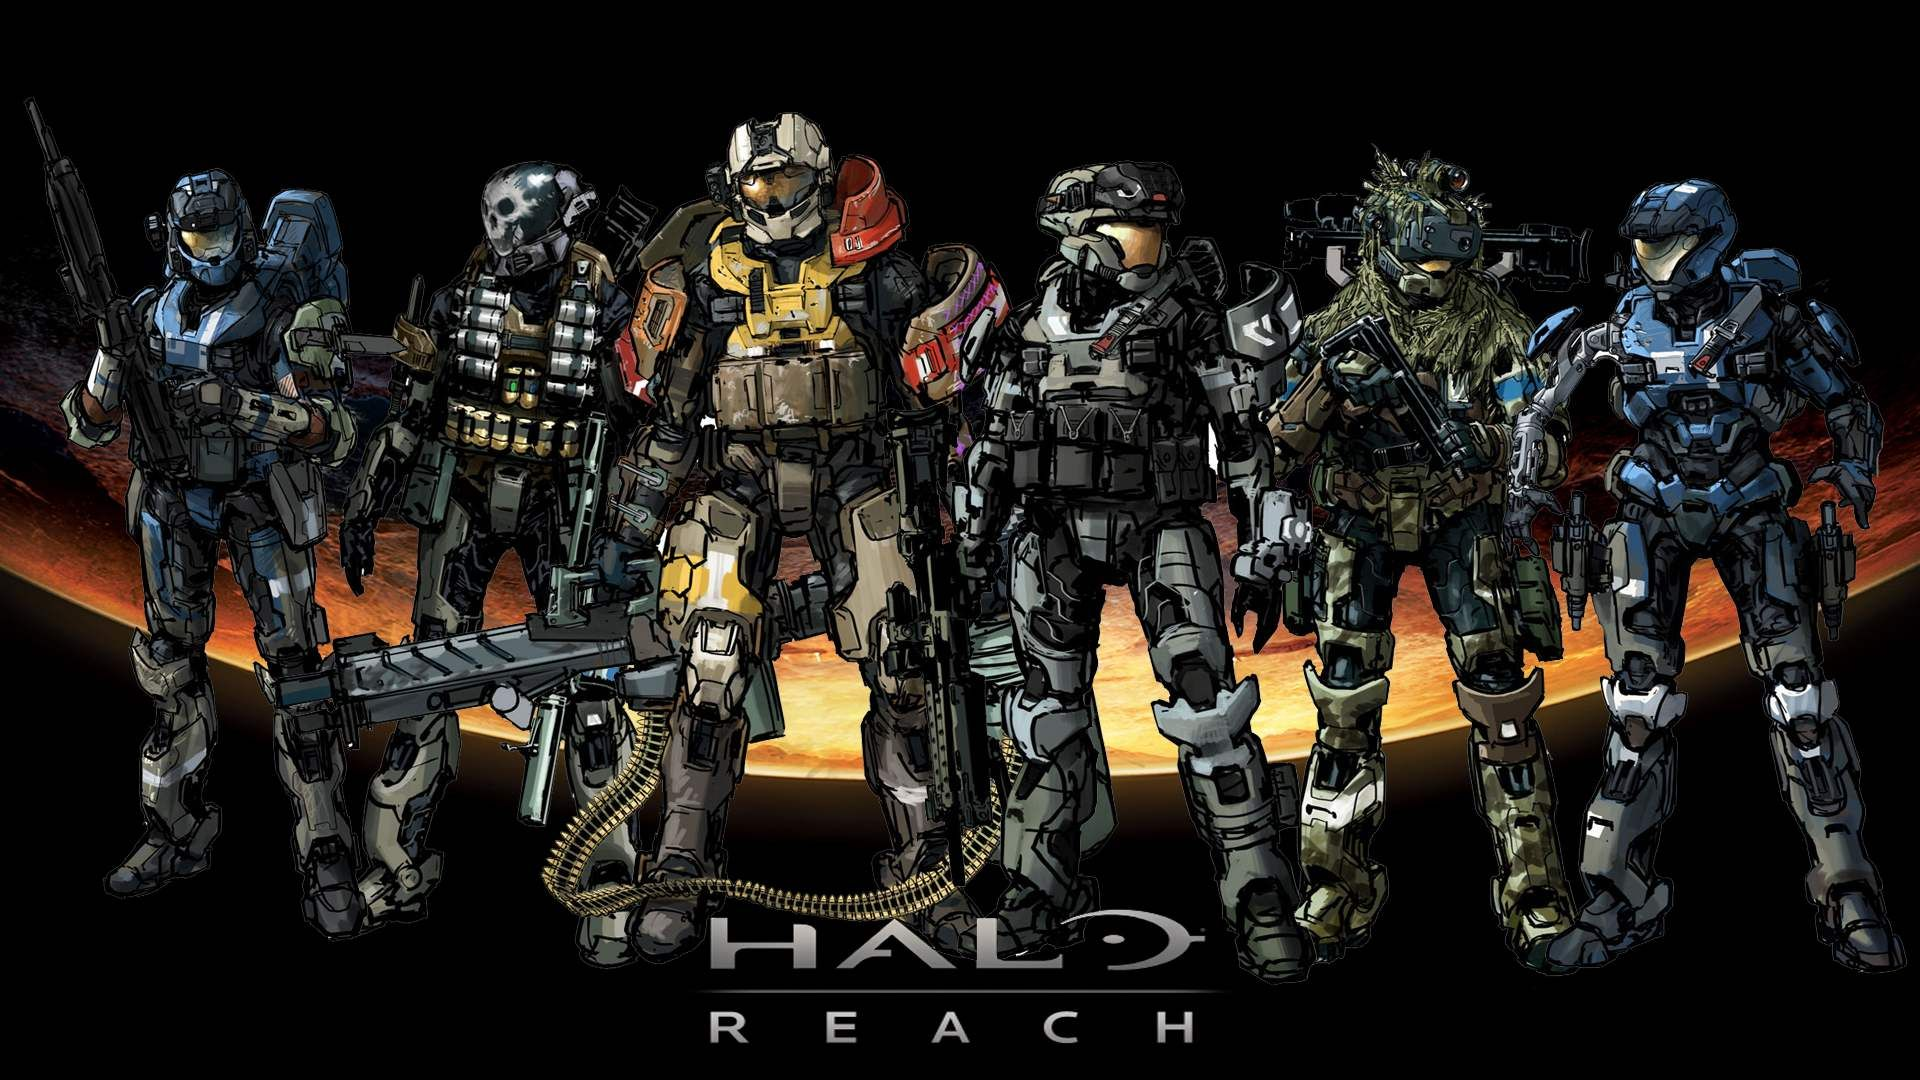 Halo Reach Wallpapers In Hd Halo Reach Halo Halo Armor